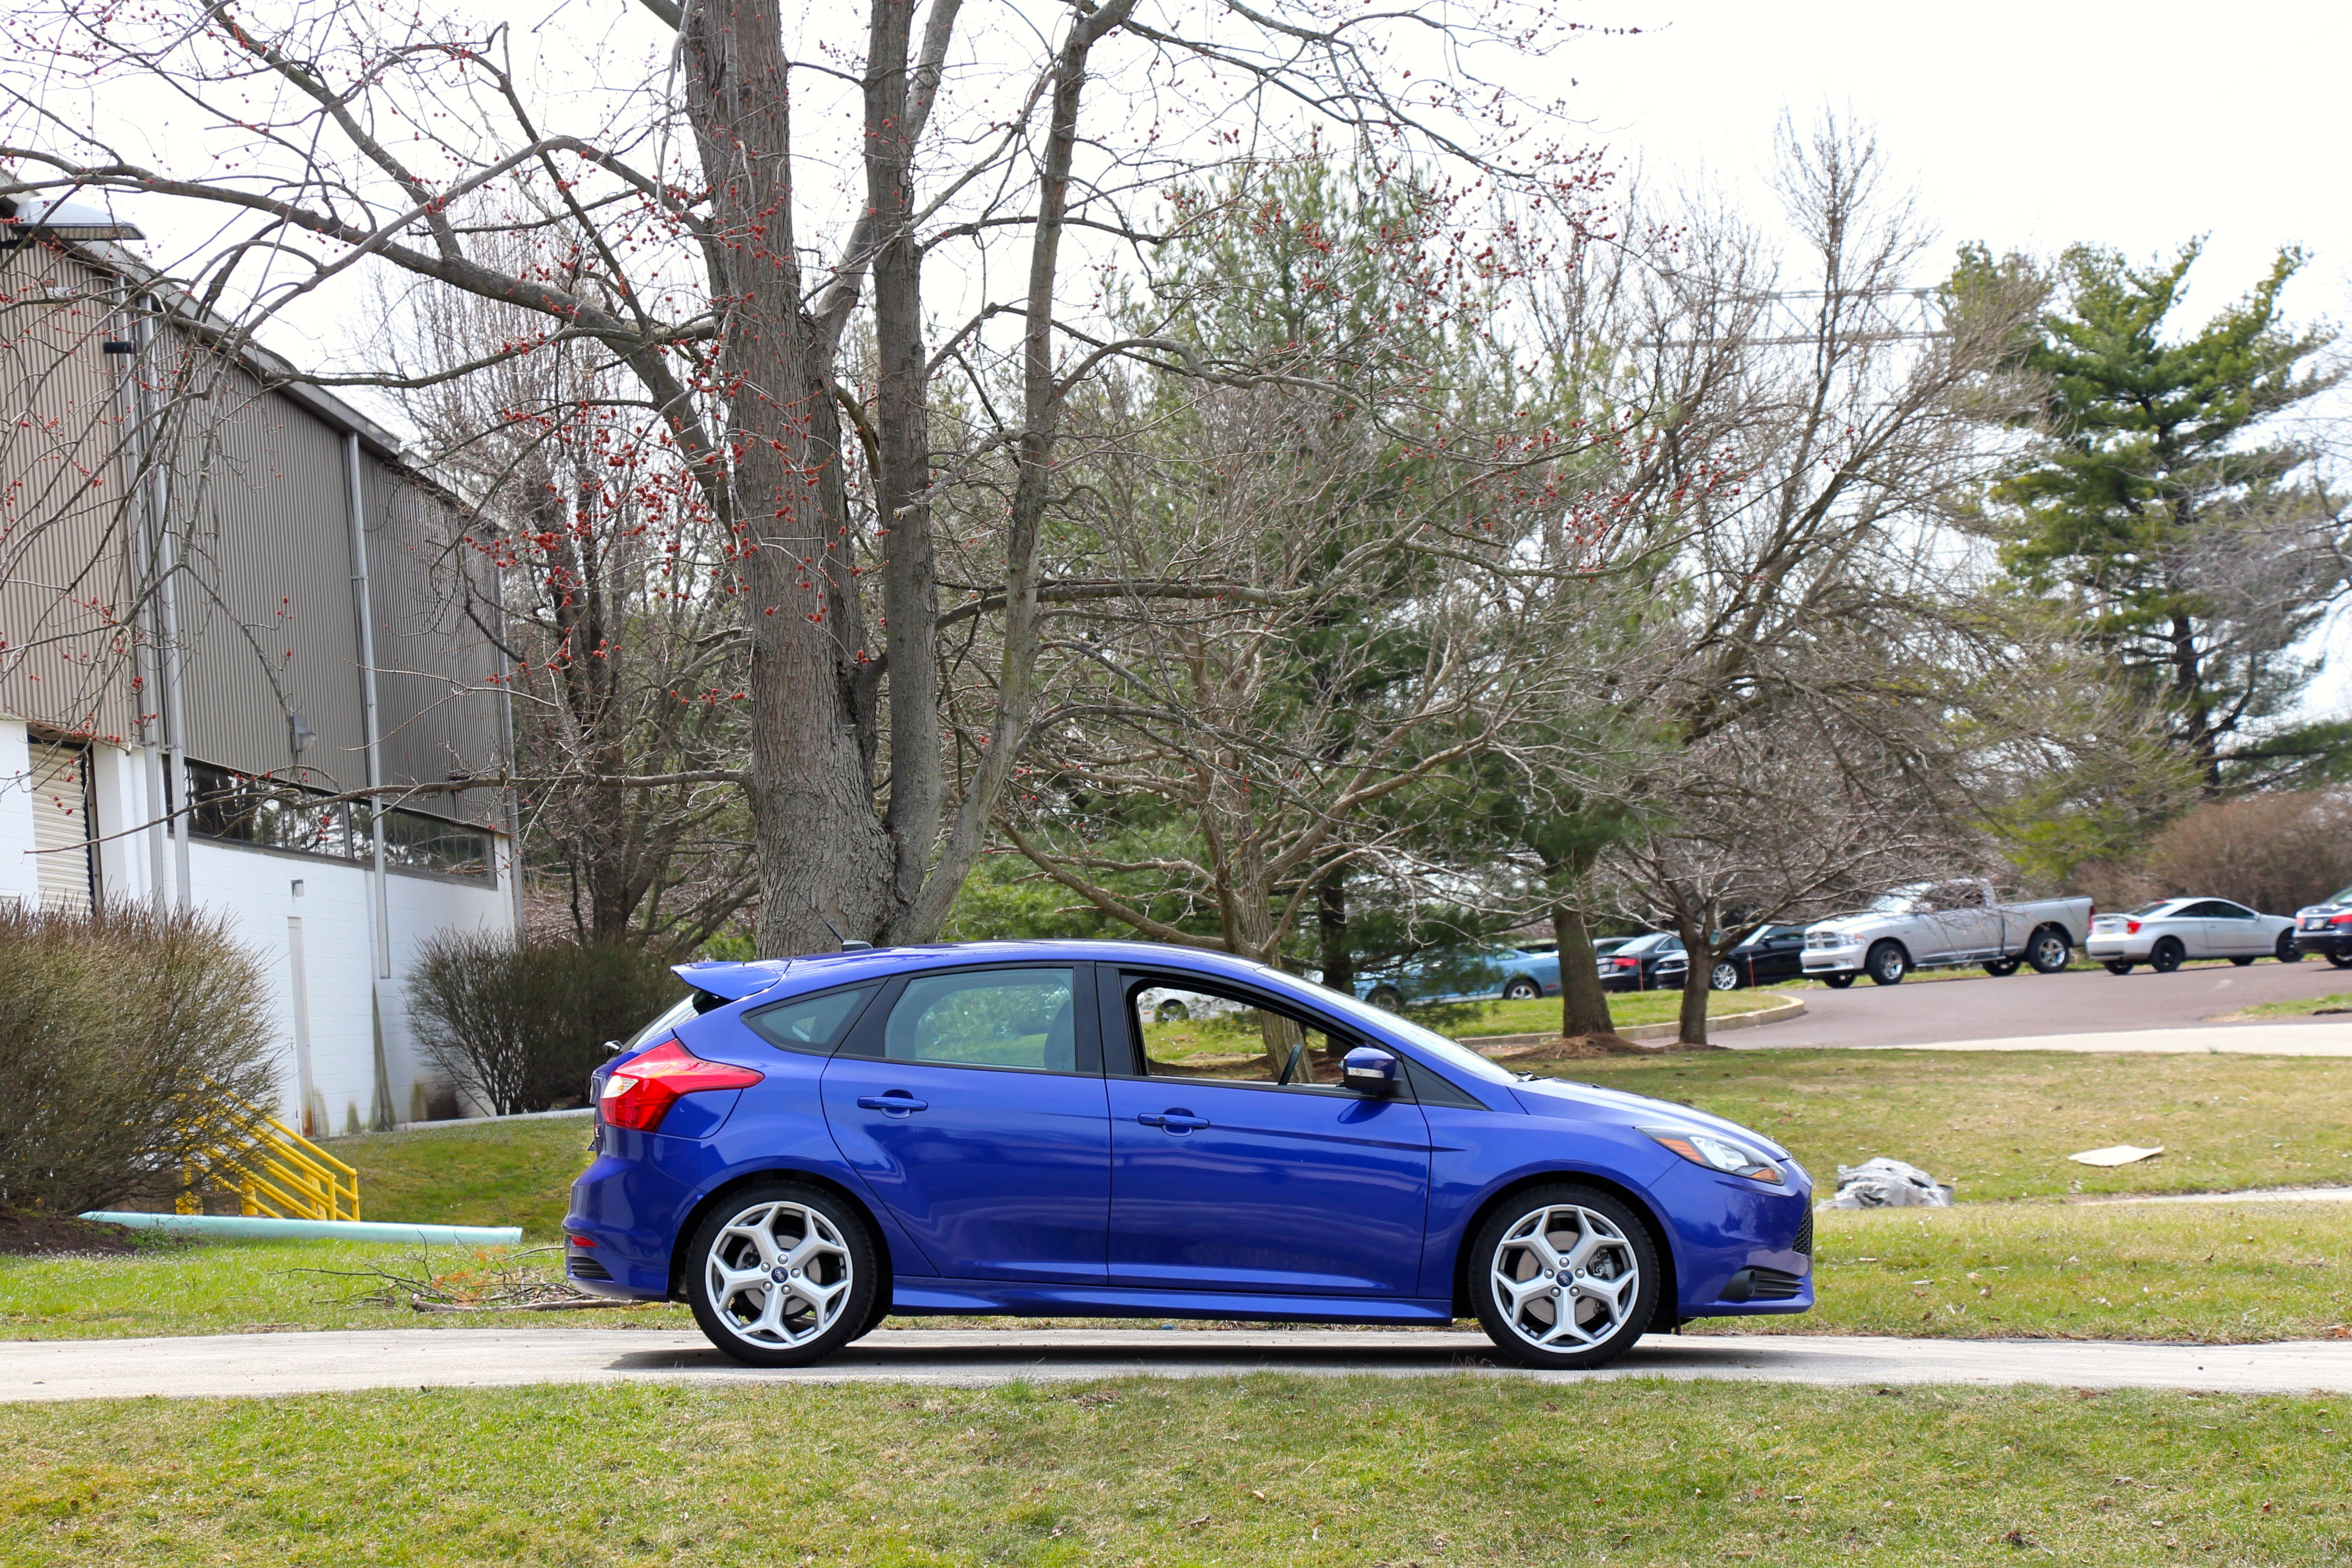 American Auto Reviews A Sport Compact Car Made In The Usa